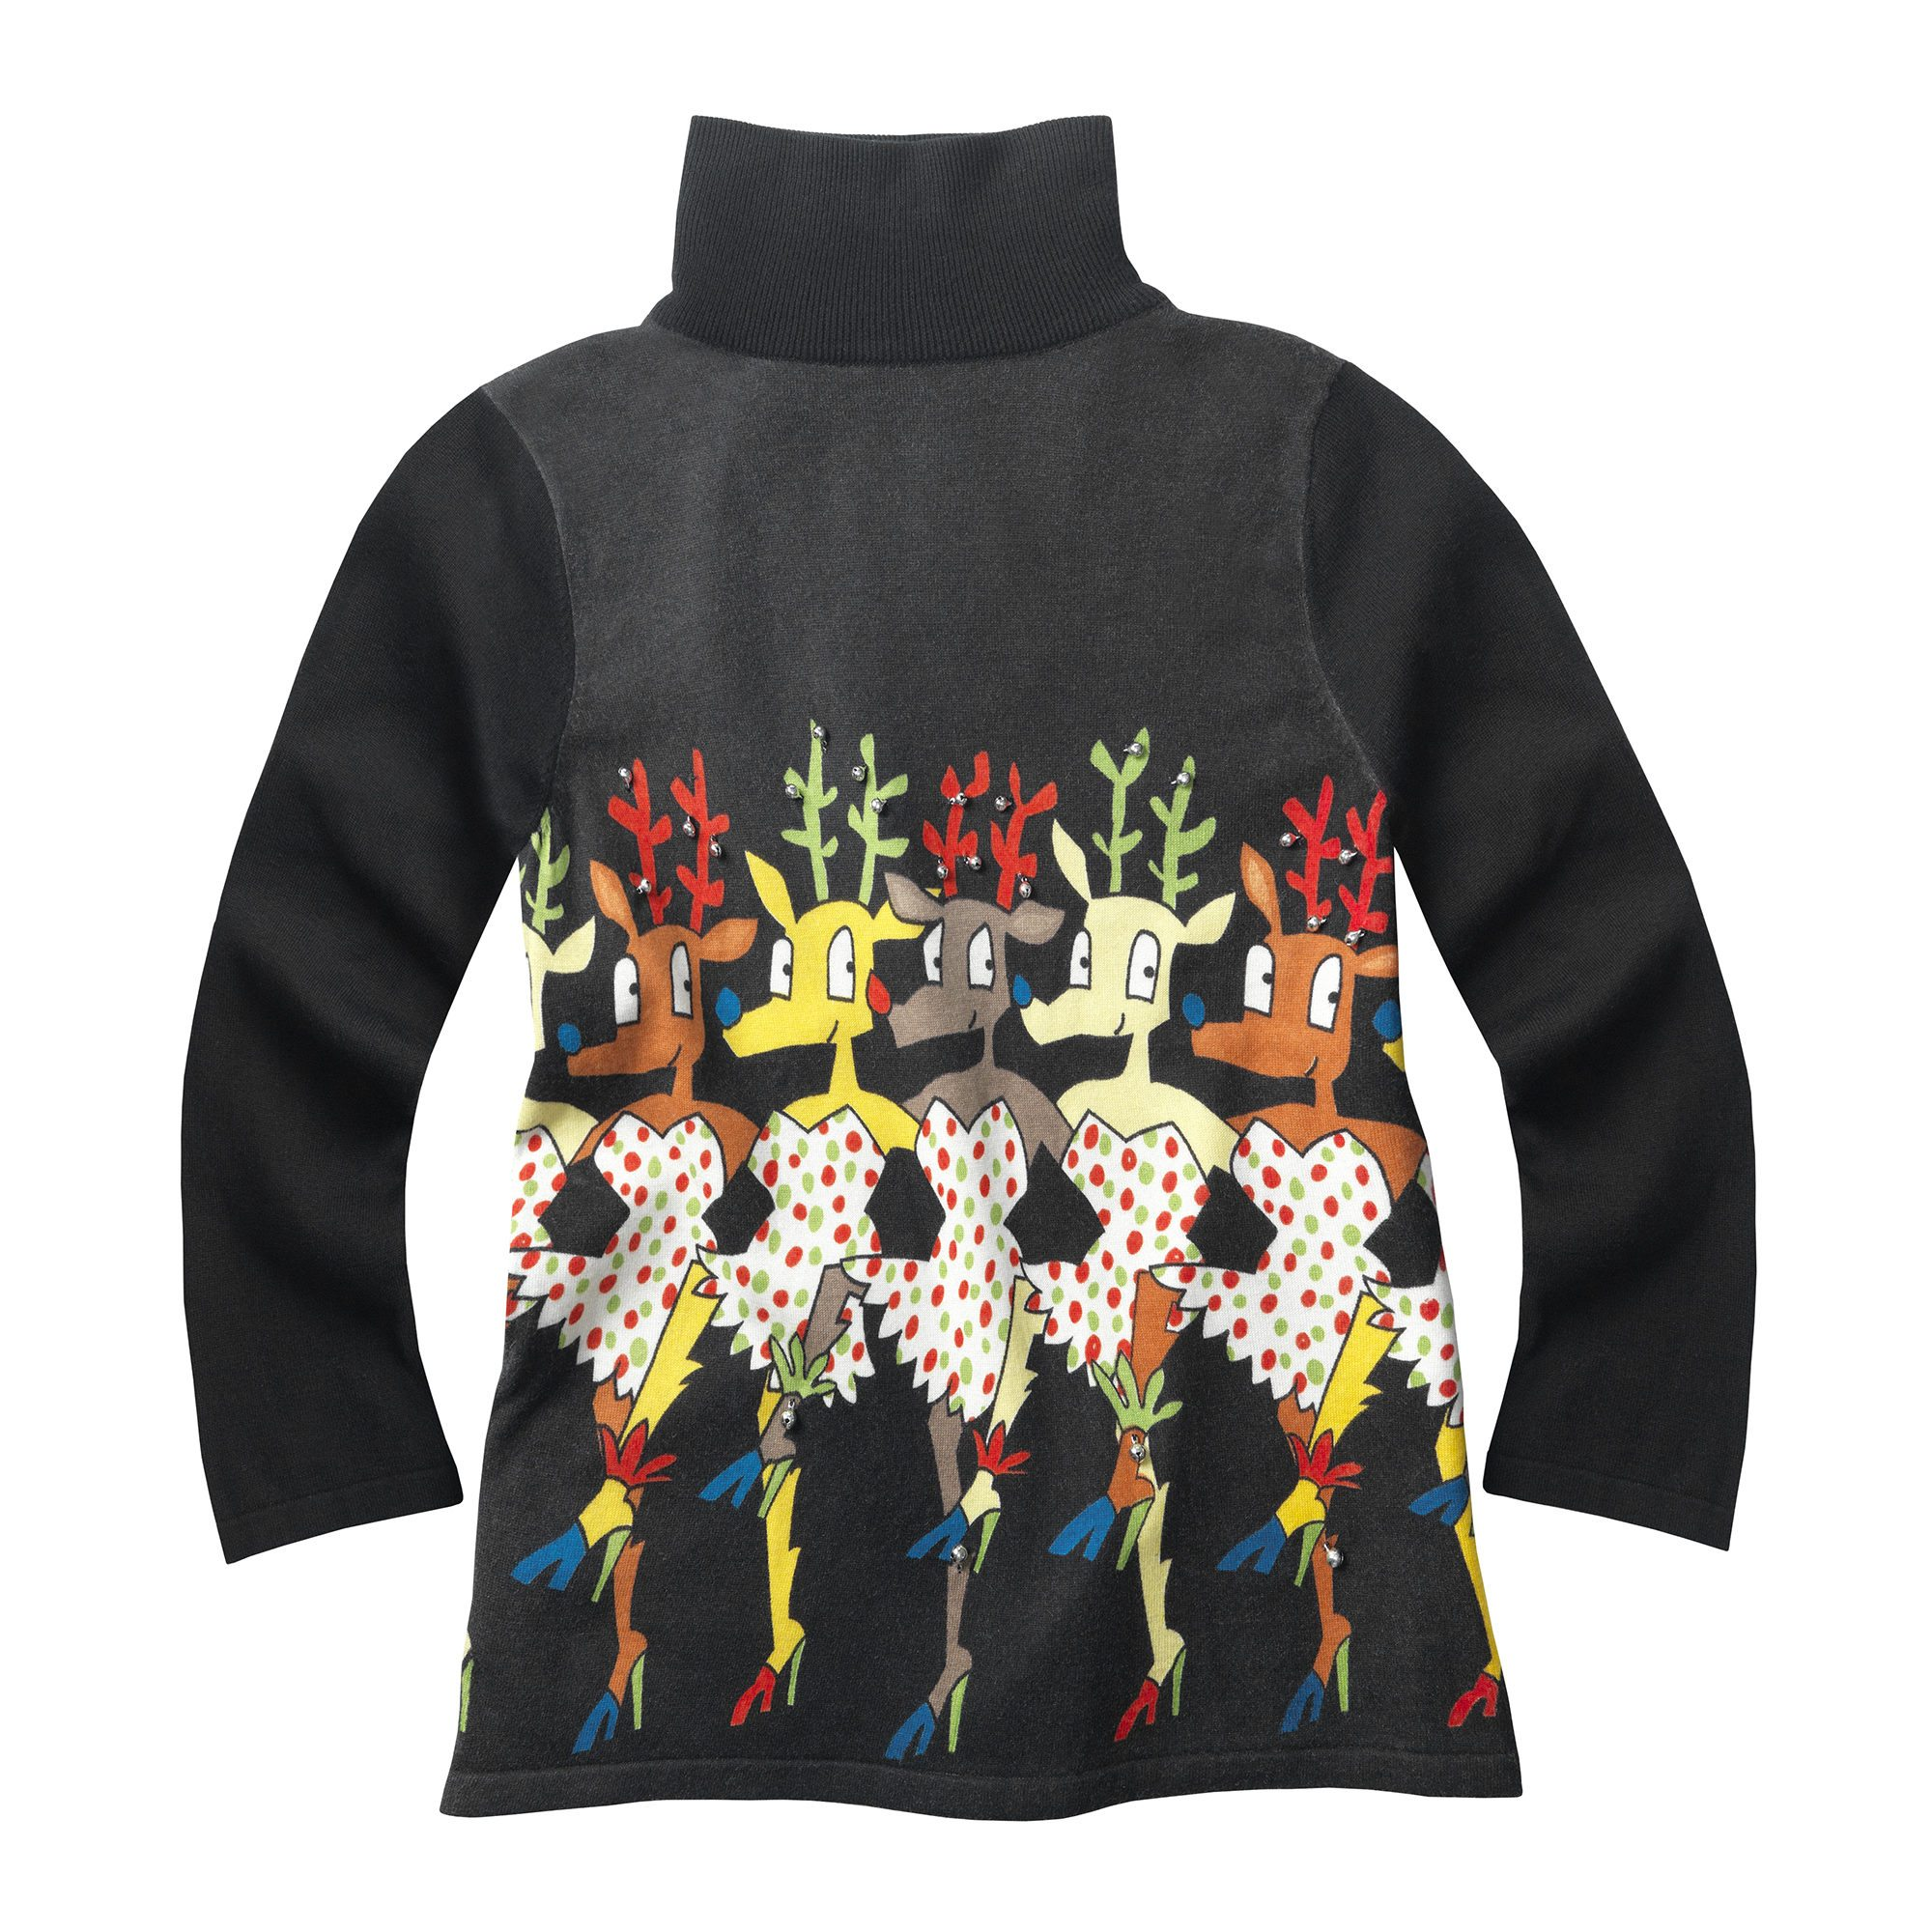 WHOOPI GOLDBERG Dancing Reindeer Turtleneck Sweater